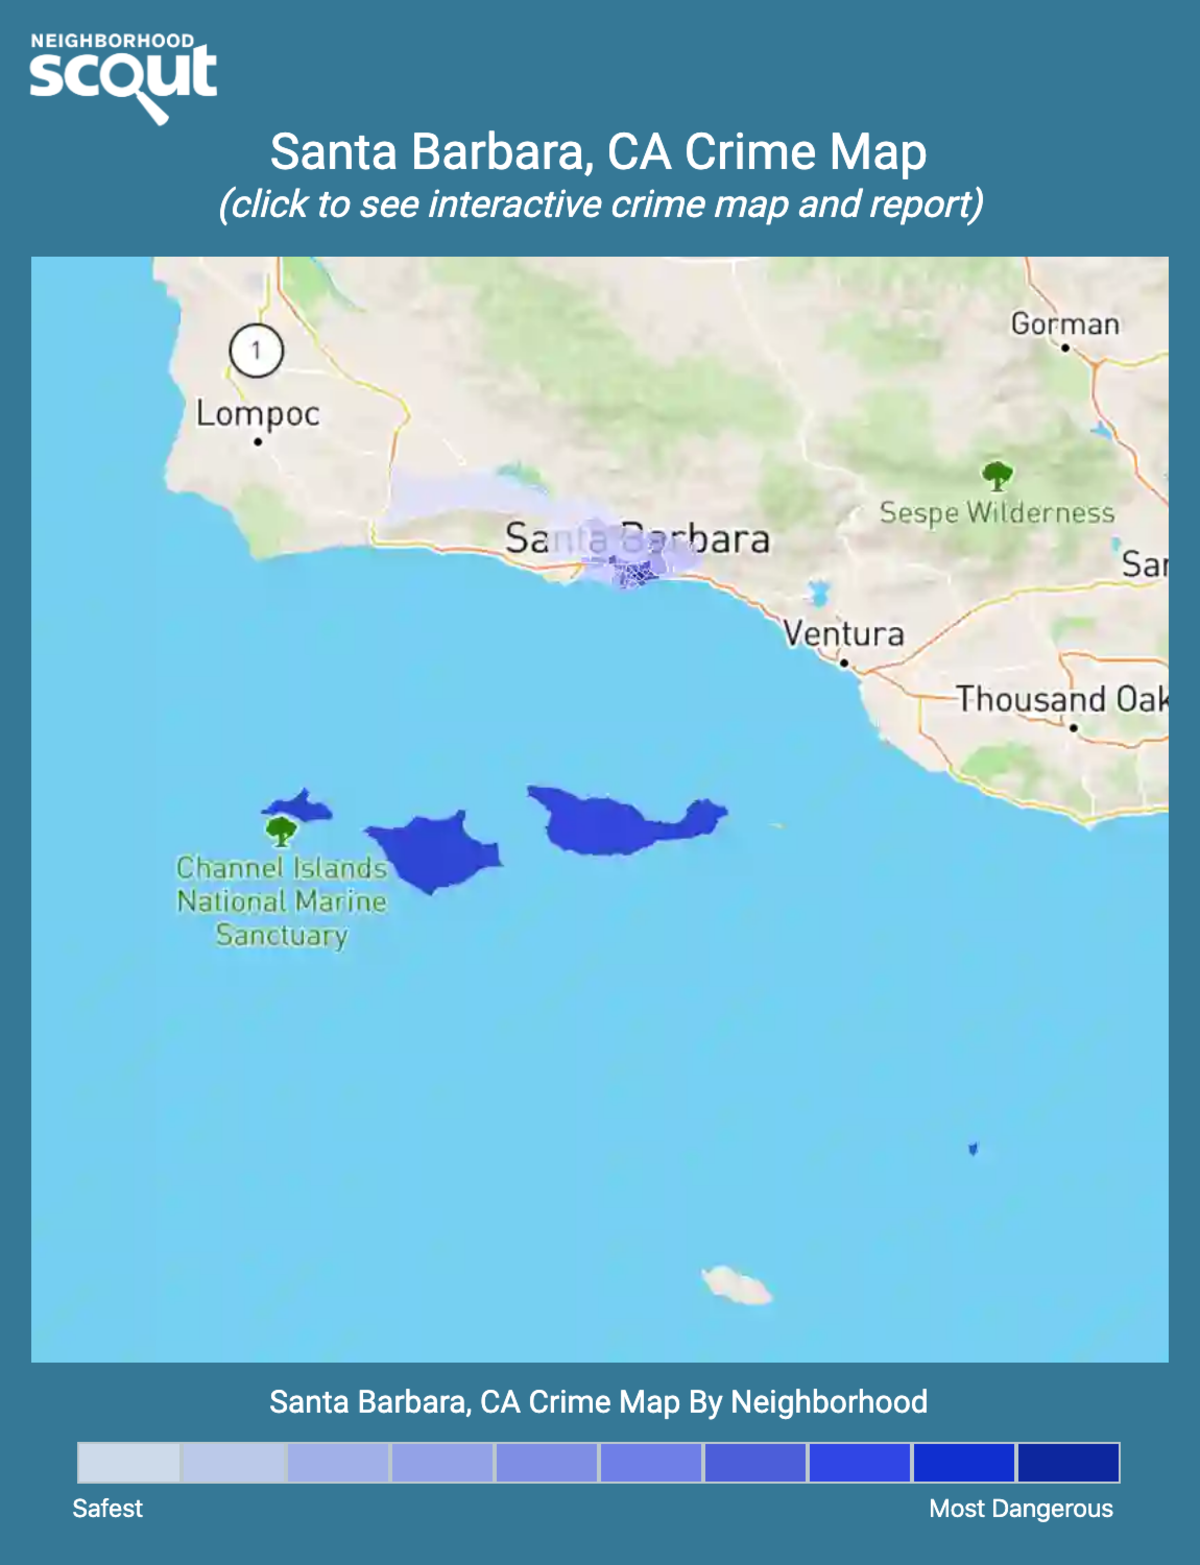 Santa Barbara, California crime map